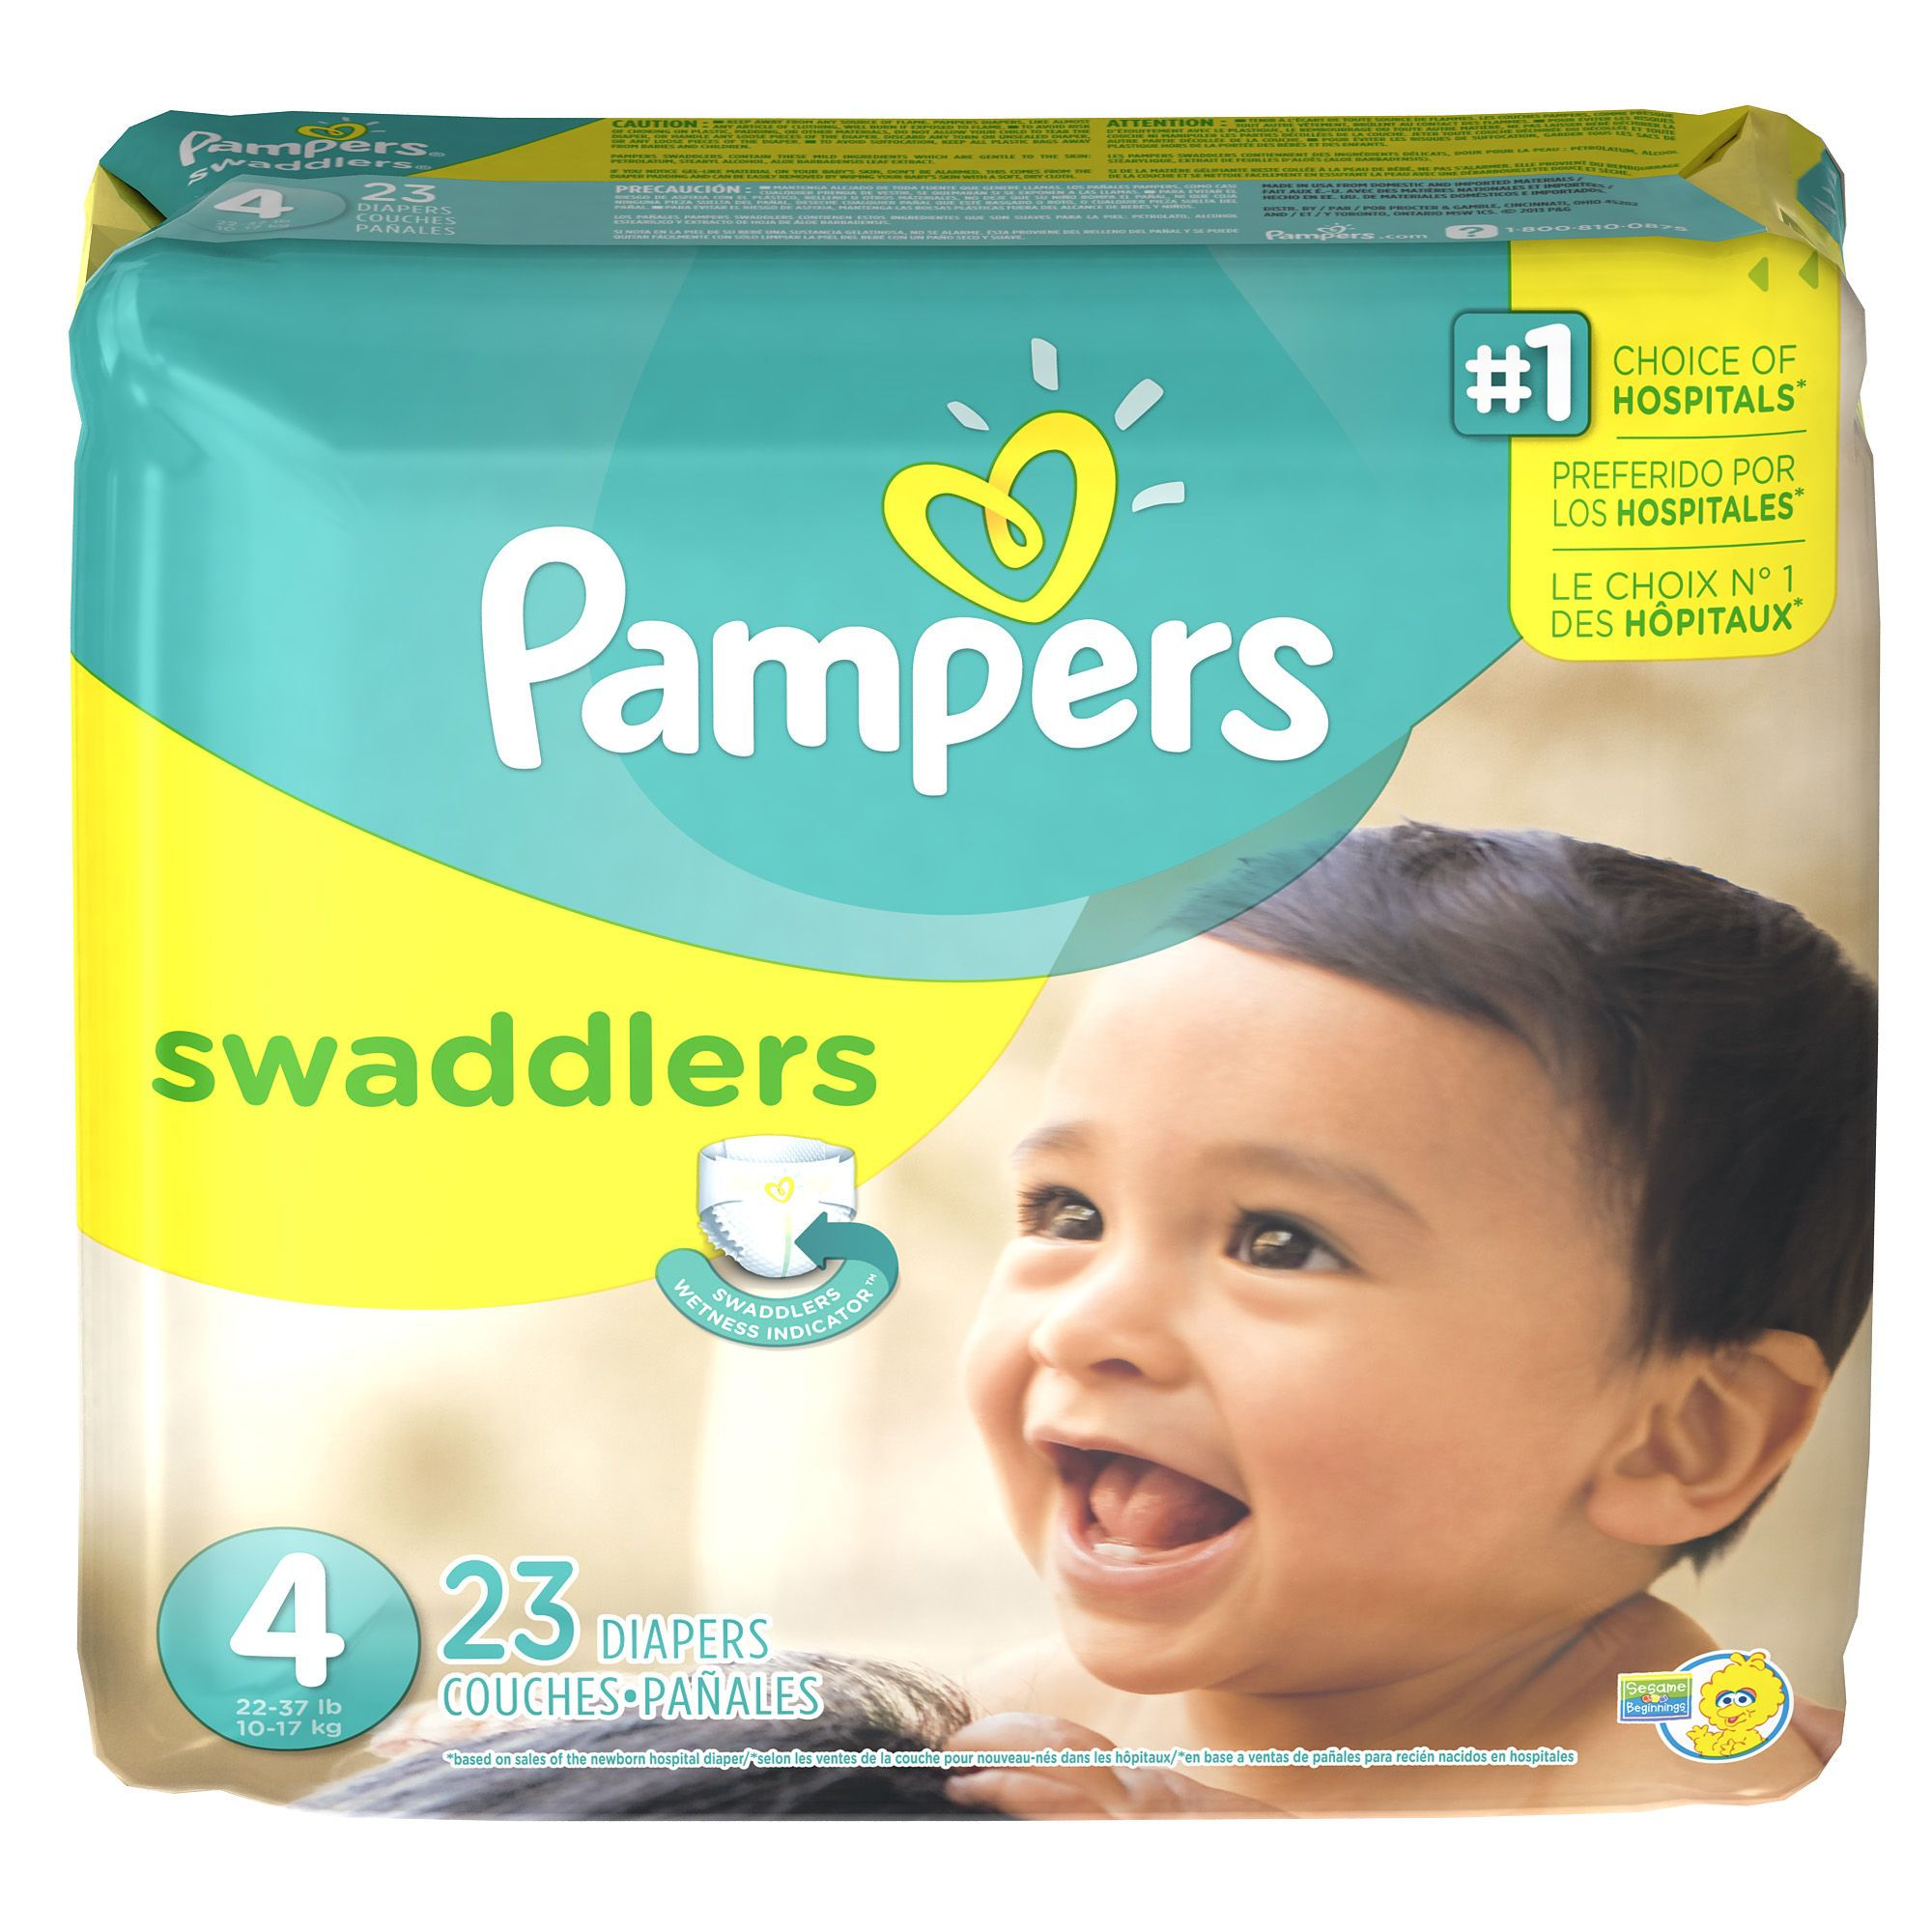 Celebrate Your Baby S Firsts Real Advice Gal Pampers Swaddlers Diapers Pampers Diapers Pampers Swaddlers